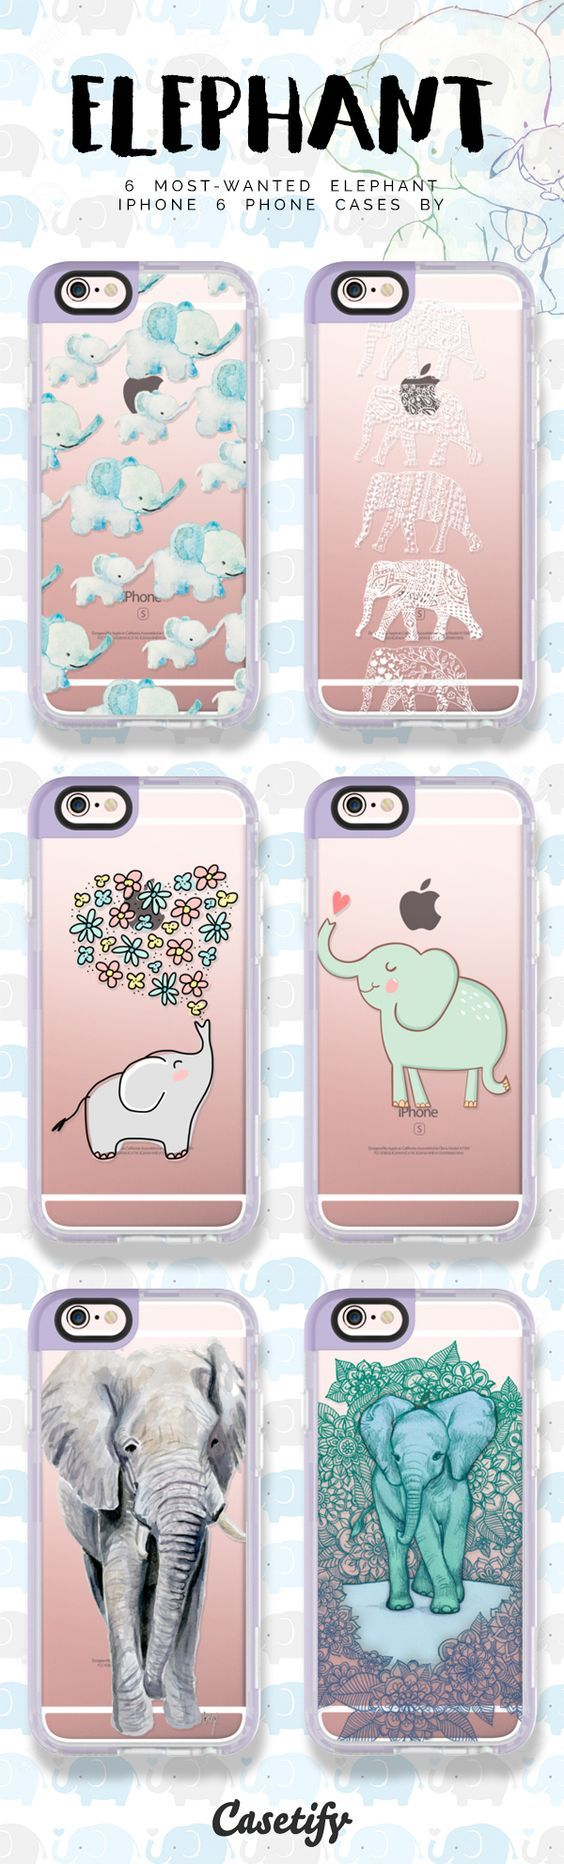 Need a new case? Have an Iphone, Galaxy, or Apple Watch? Check out the link below or click the picture! https://www.casetify.com/invite/hikh6m